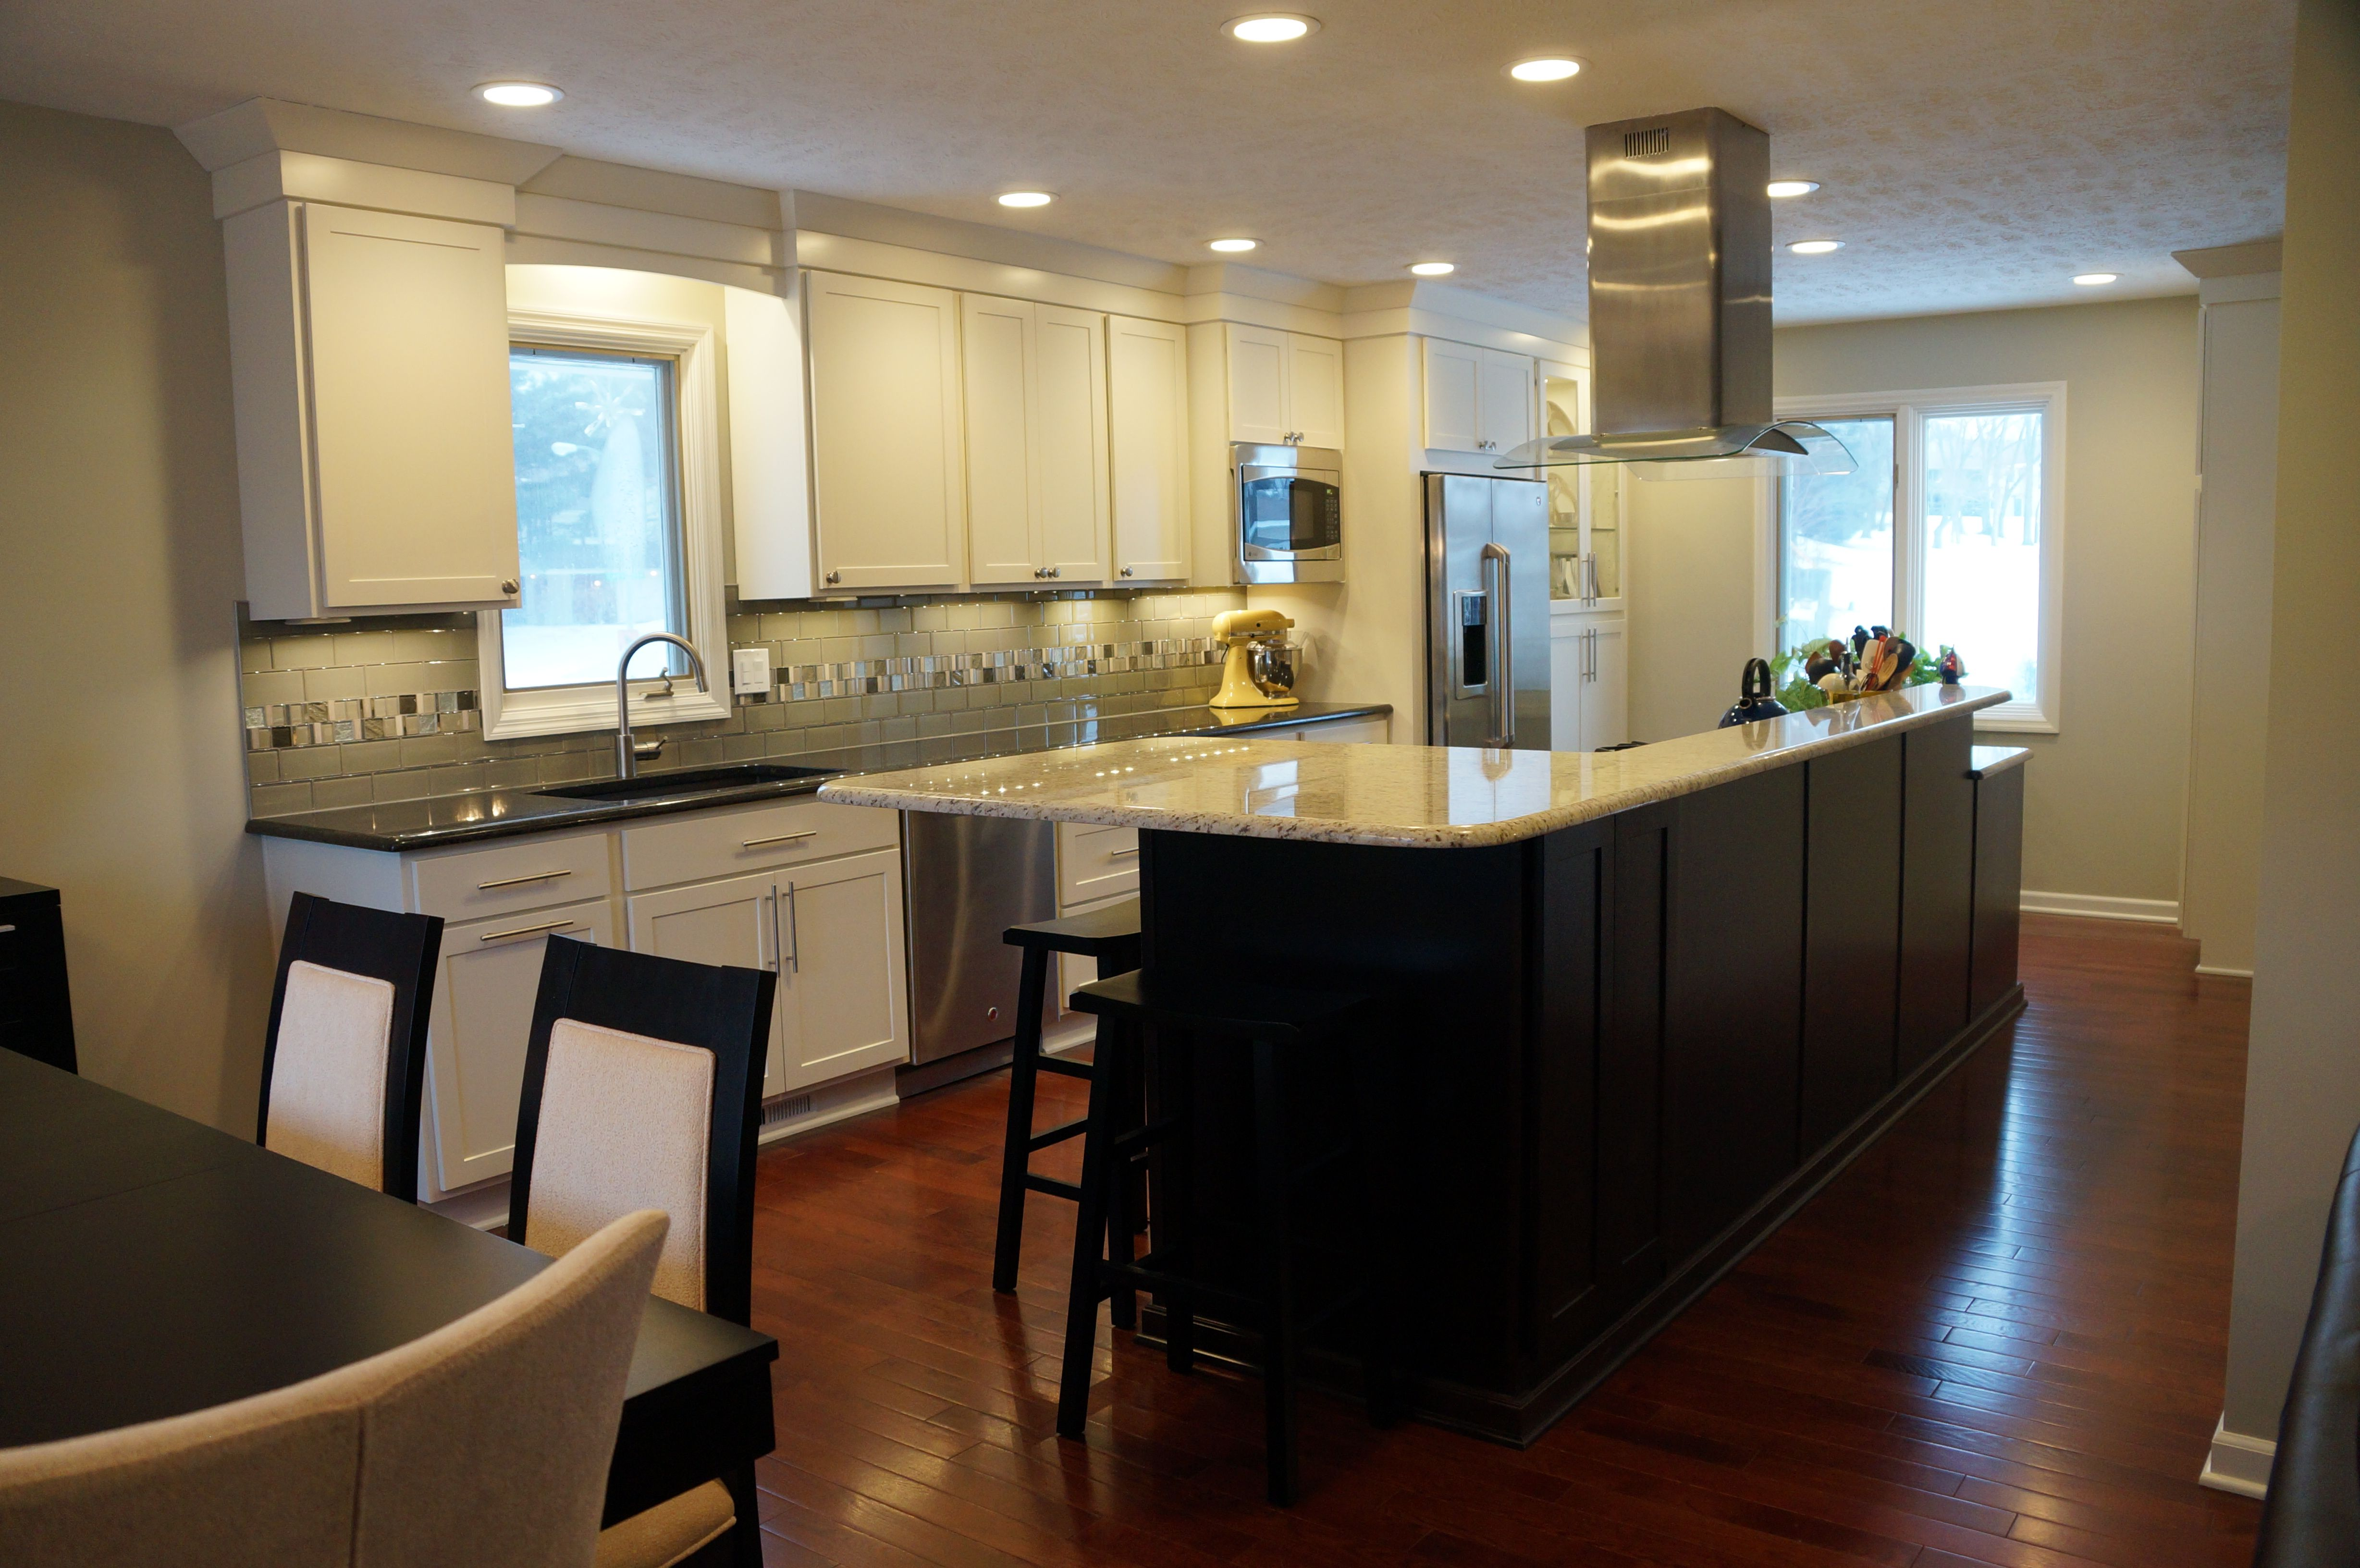 Modern Traditional Kitchens By Design Omaha Kitchen Design Kitchen Remodel Traditional Kitchen